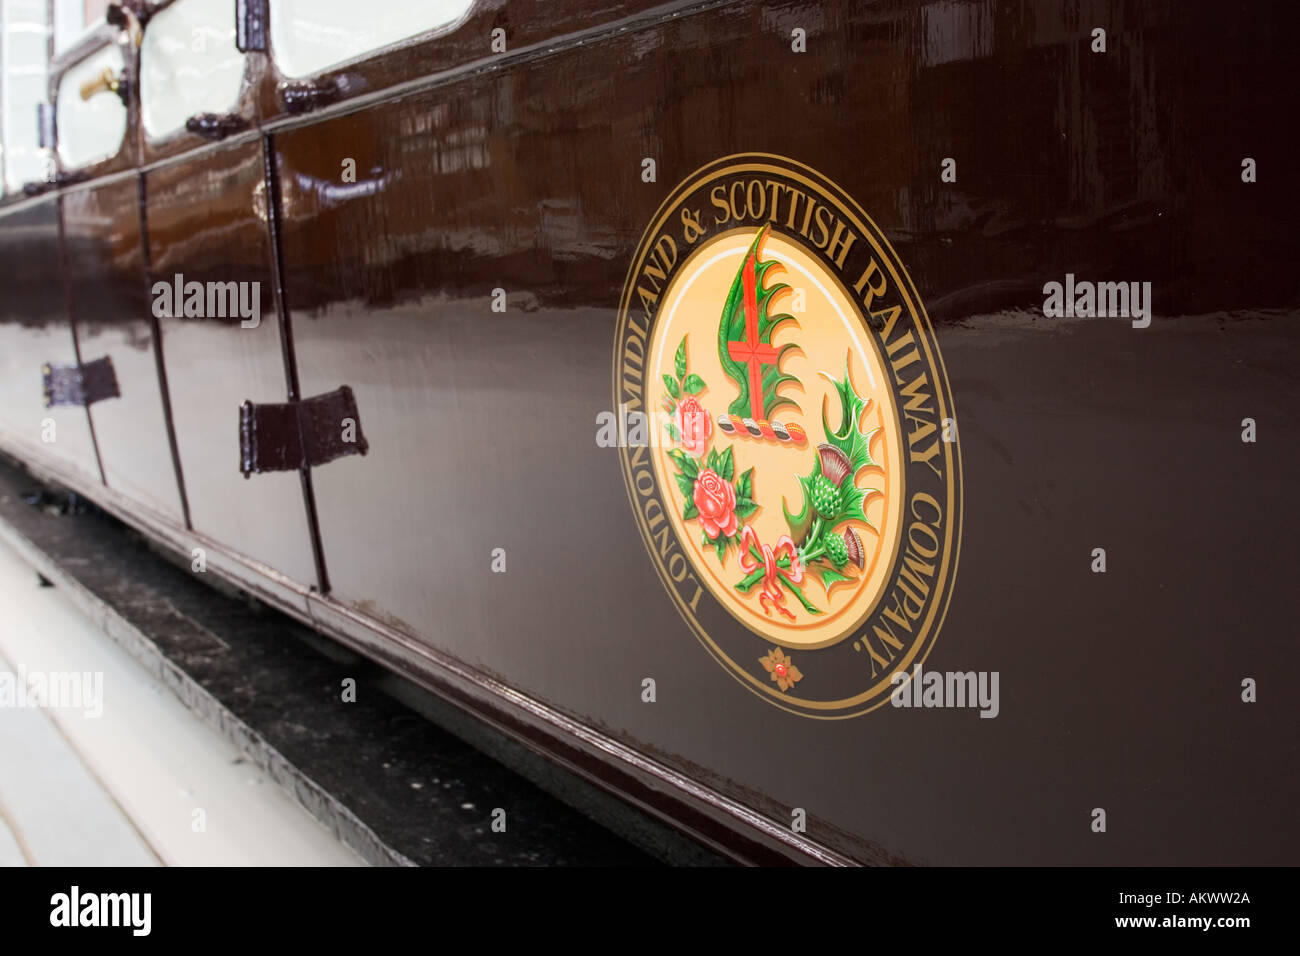 London Midland Scottish LMS Railway insignia on a brown carriage - Stock Image